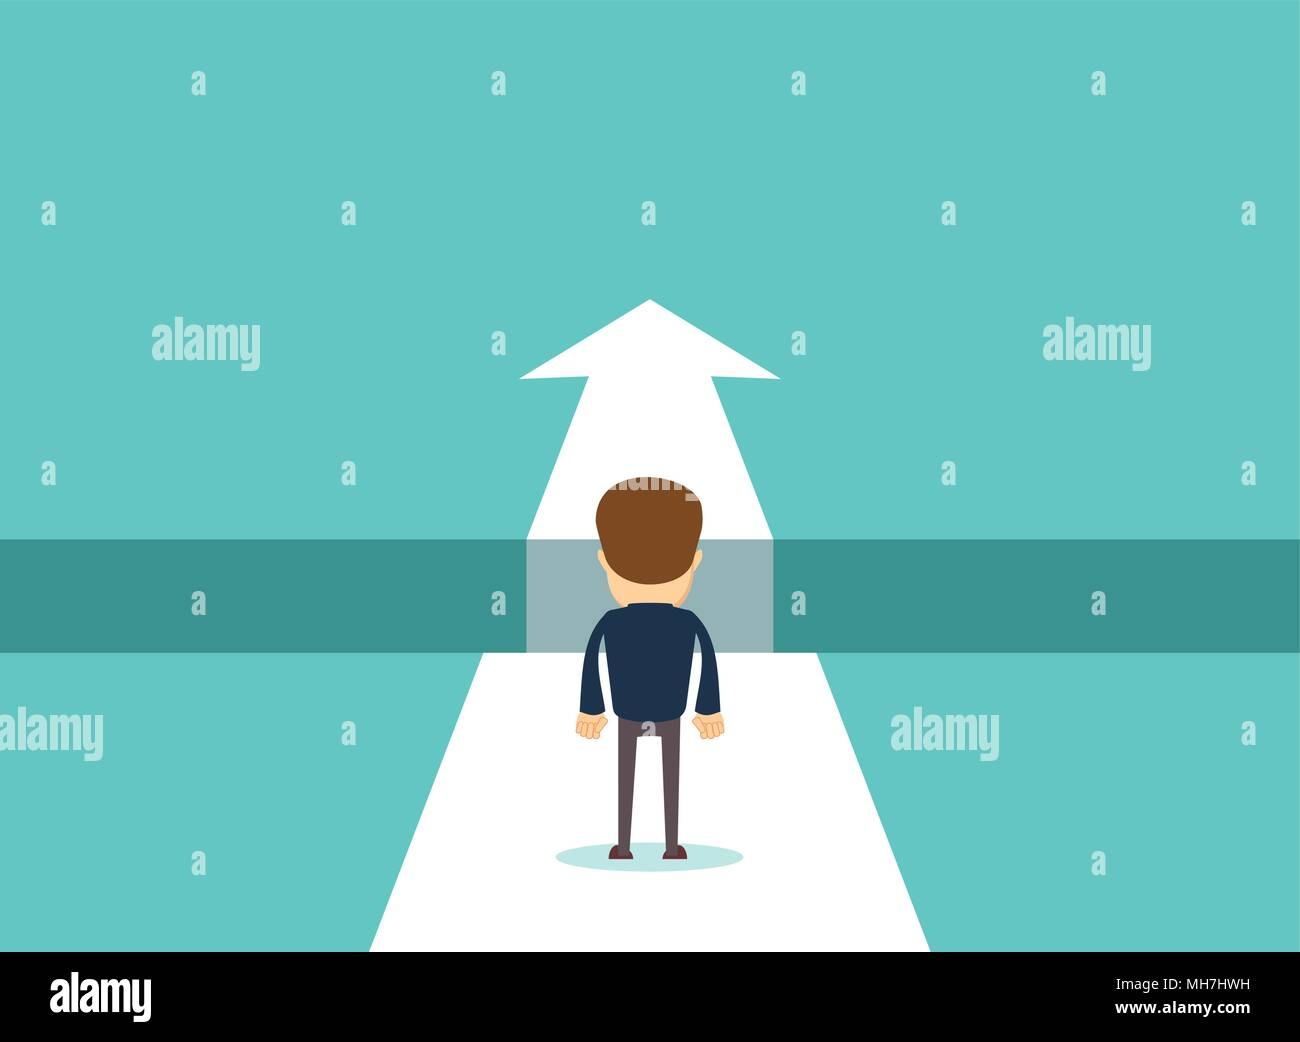 Business challenge concept with businessman walking towards gap. - Stock Image